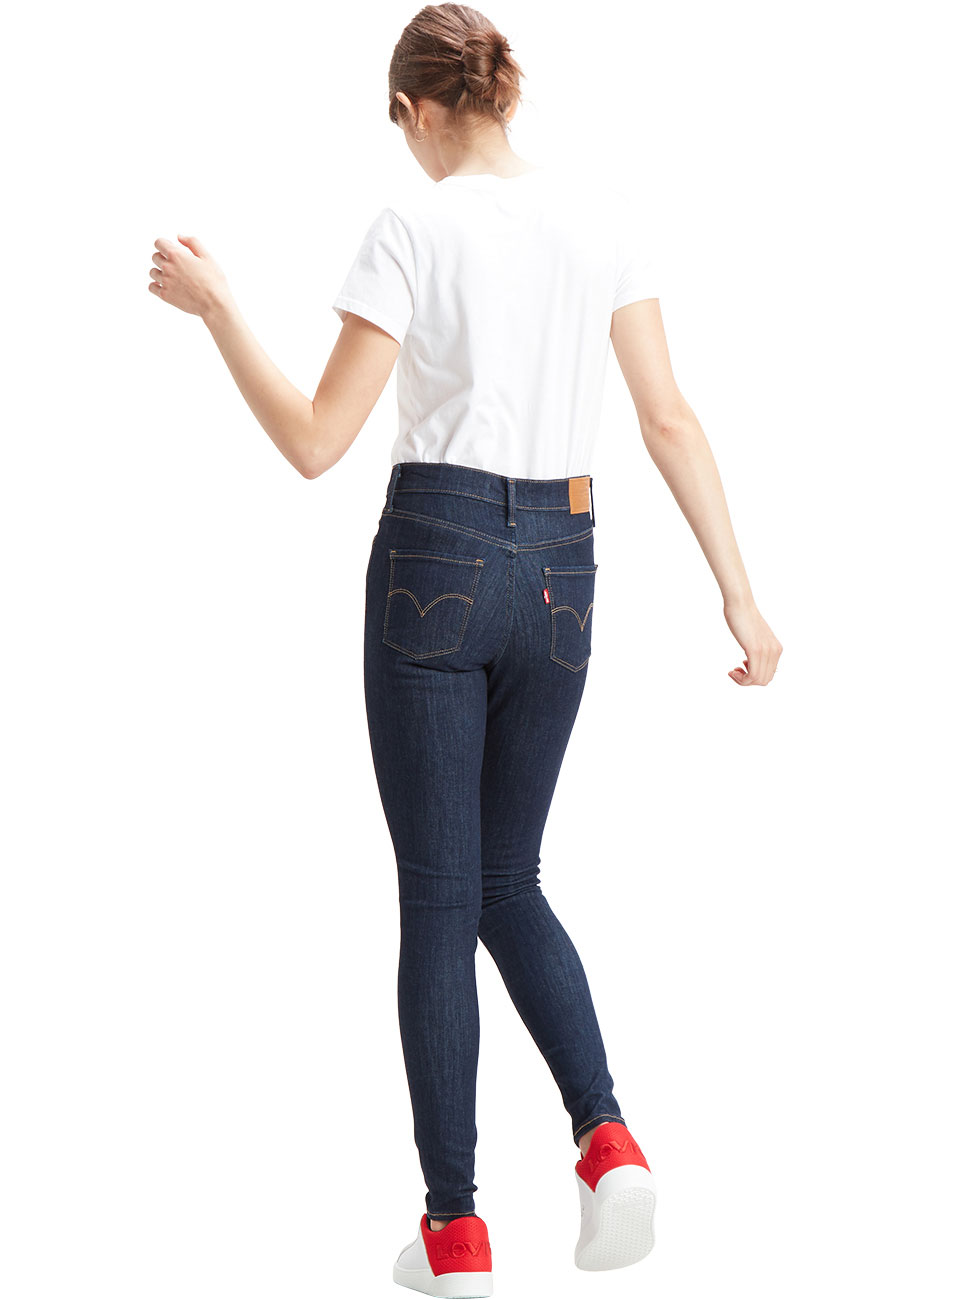 levis-damen-jeans-310-shaping-super-skinny-fit-blau-deep-serenity